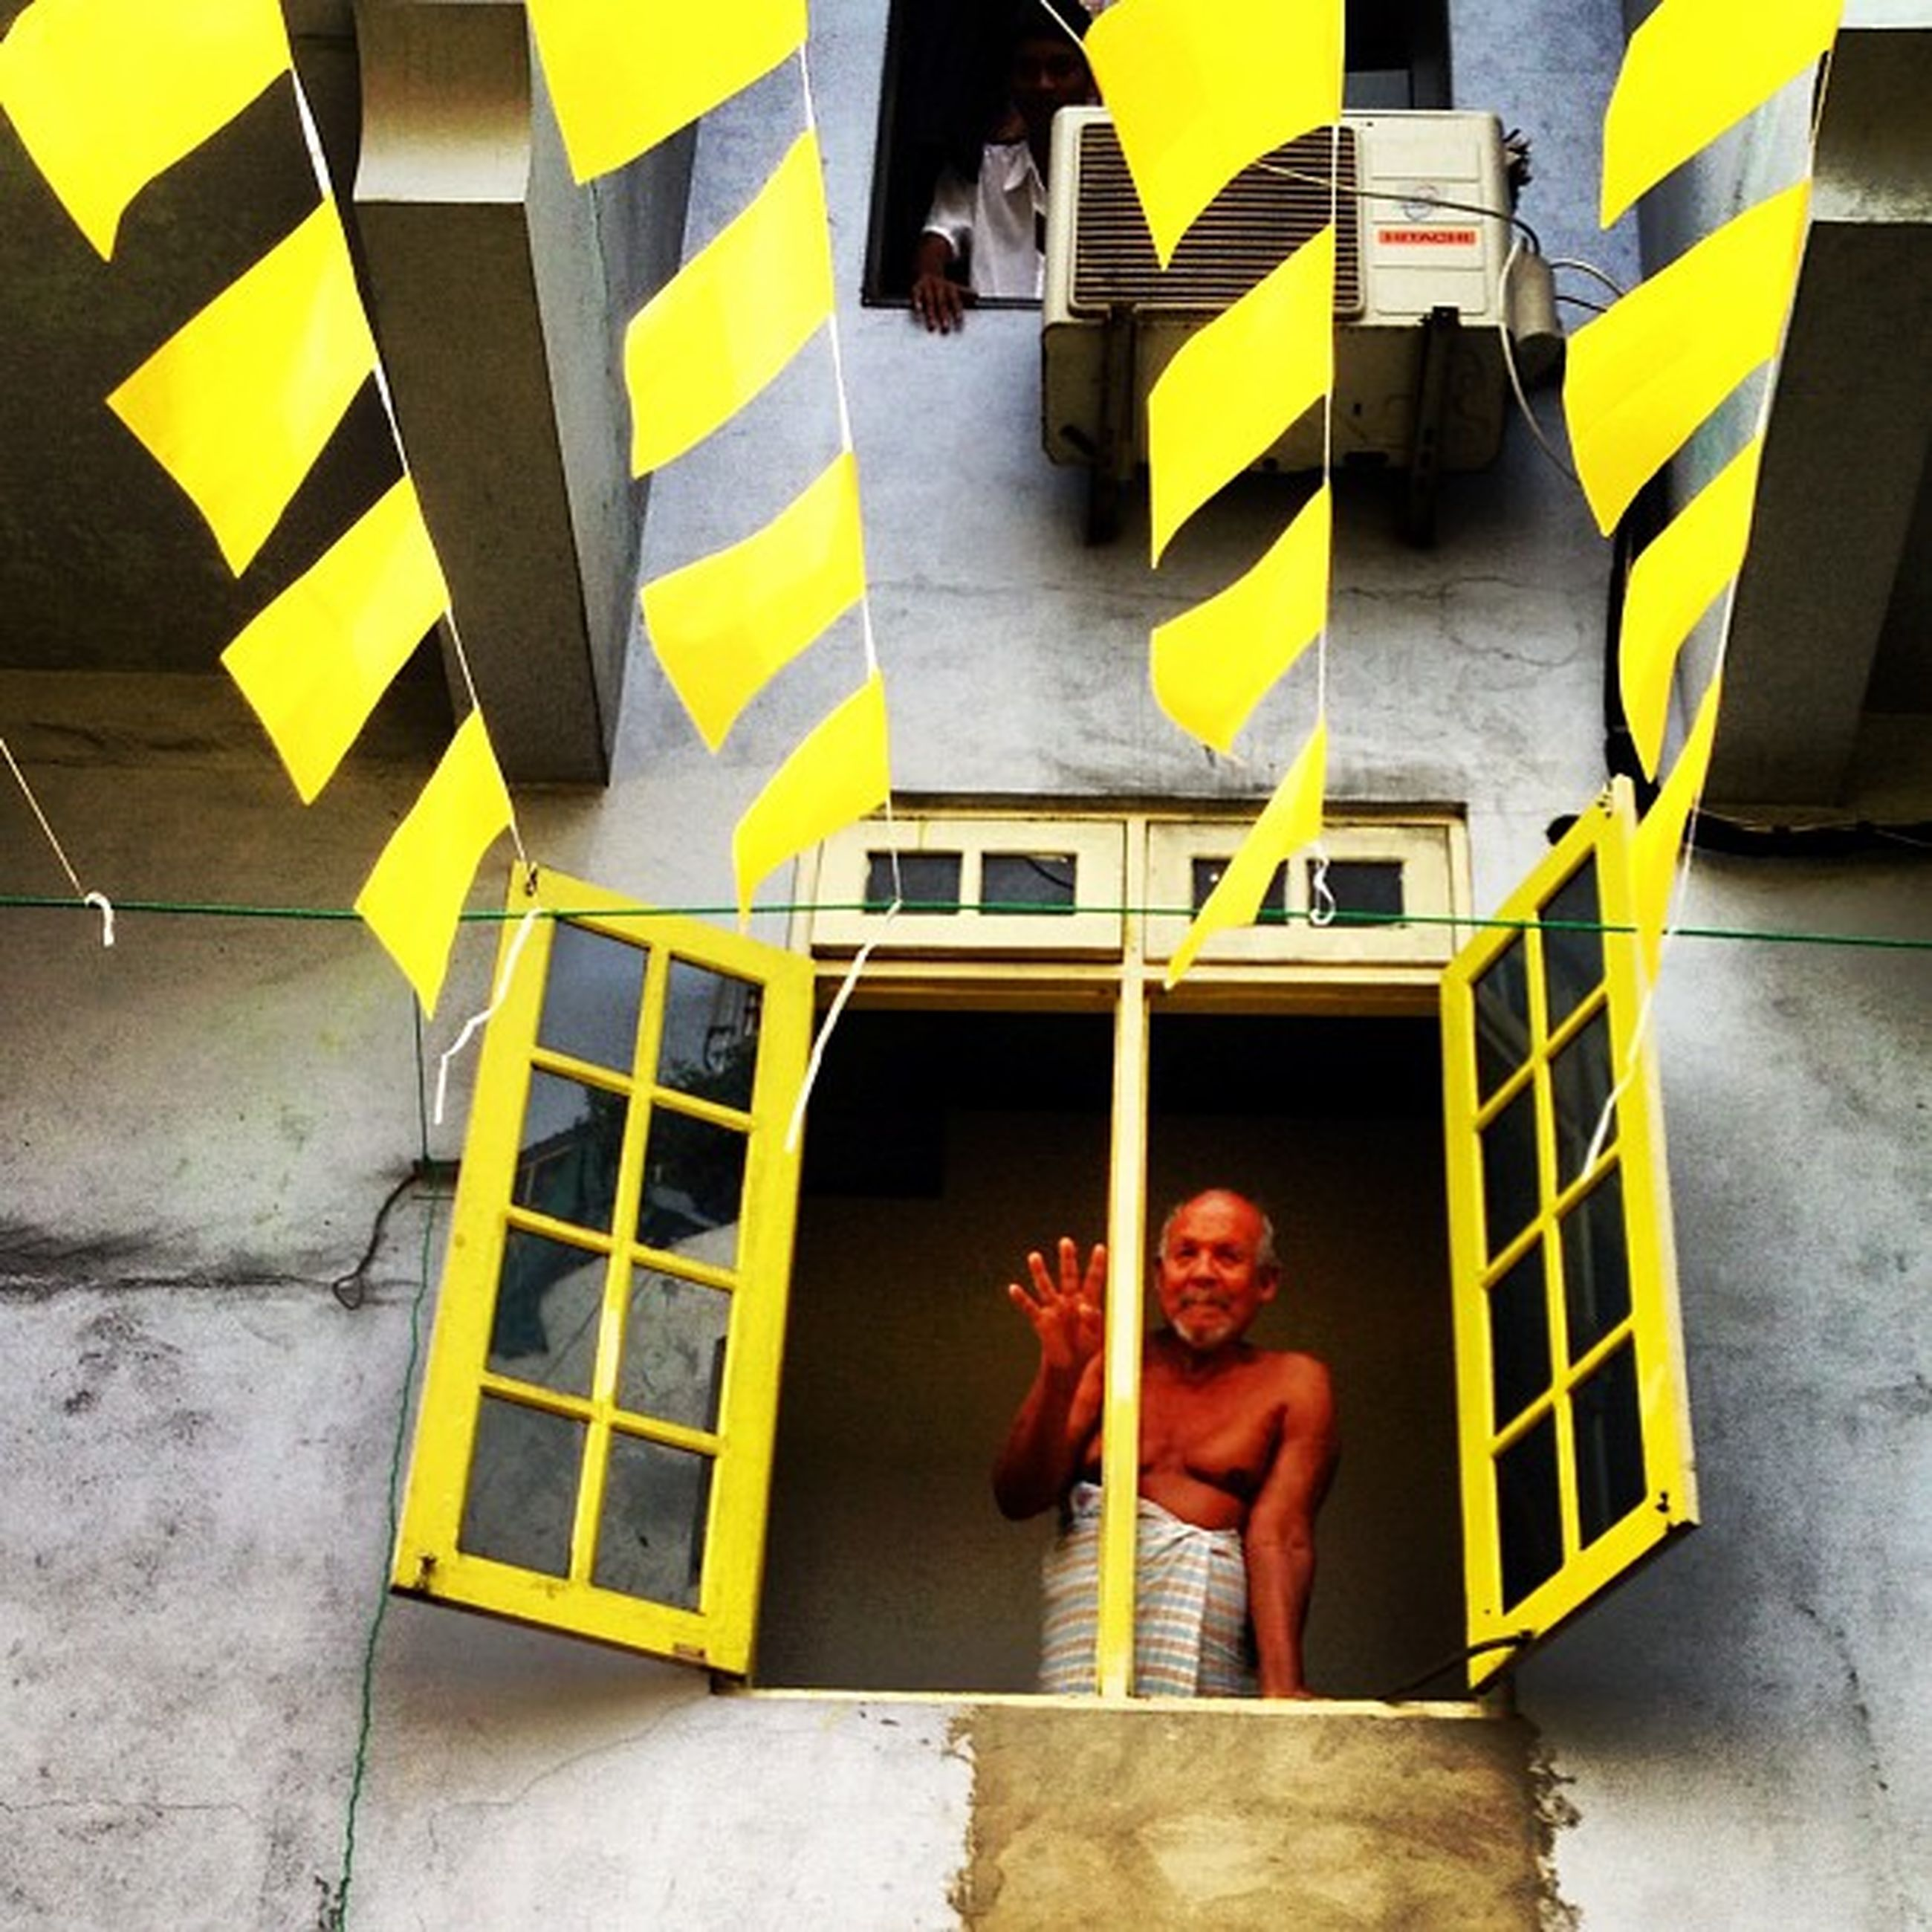 yellow, built structure, lifestyles, architecture, building exterior, wall - building feature, holding, standing, leisure activity, person, front view, casual clothing, art, three quarter length, creativity, day, outdoors, childhood